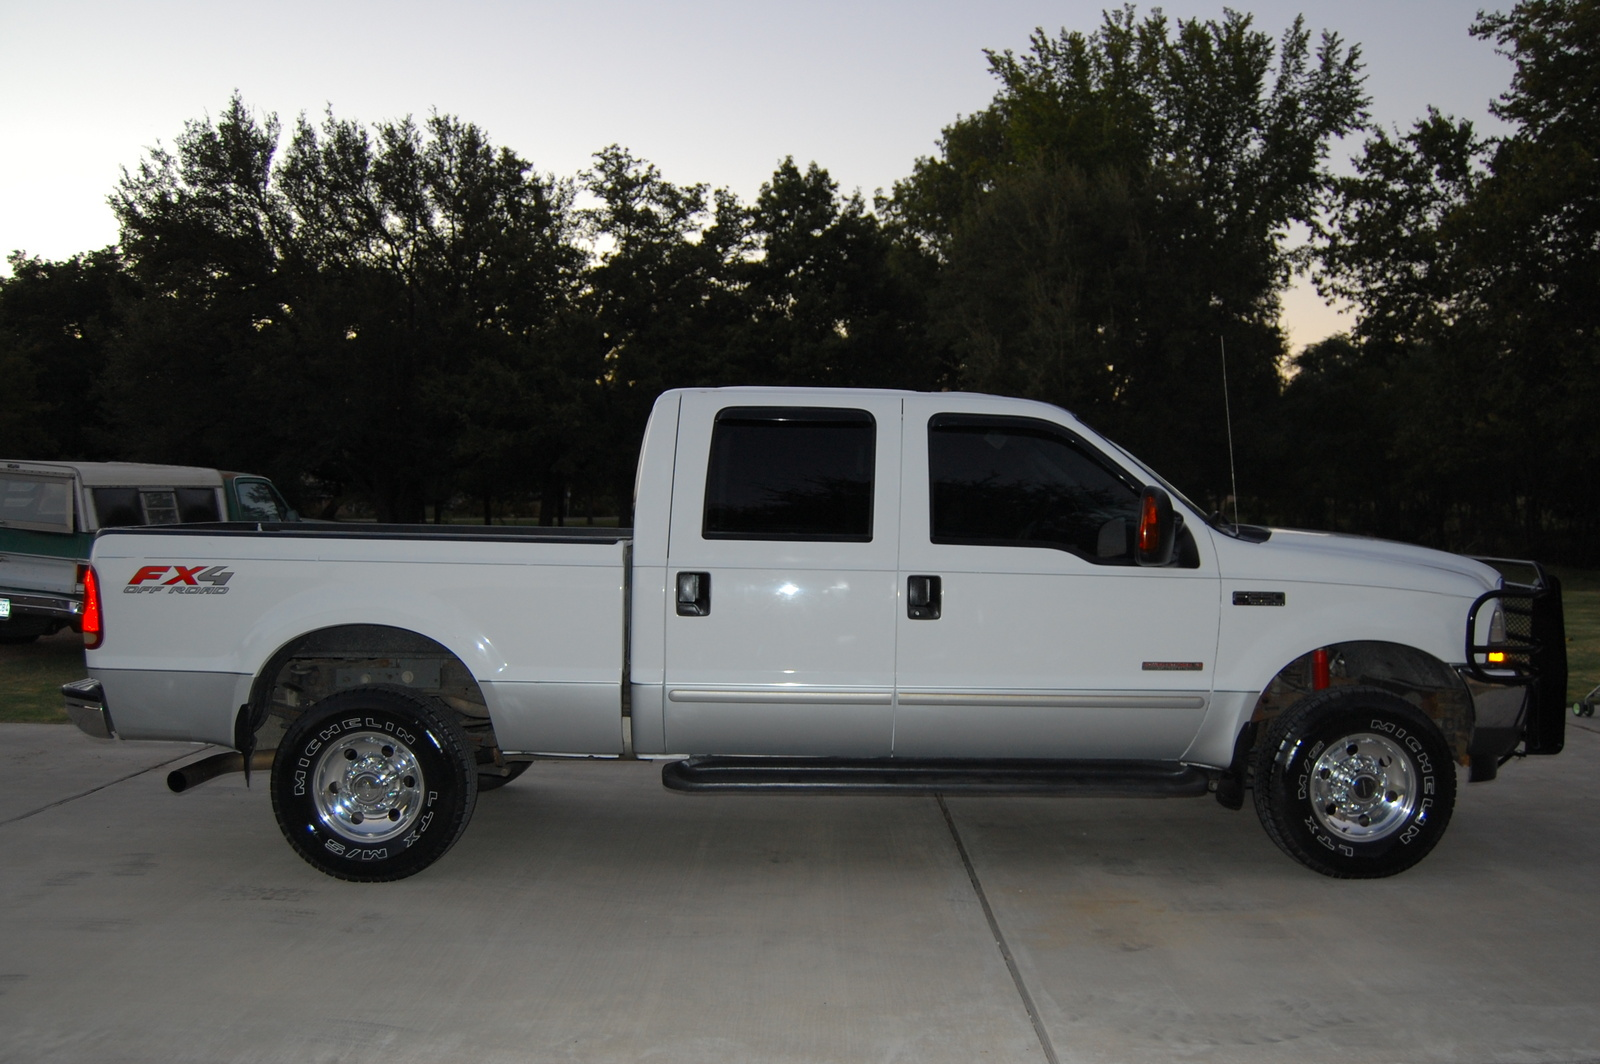 2004 ford f 250 super duty xlt crew cab sb picture of 2004 ford f 250